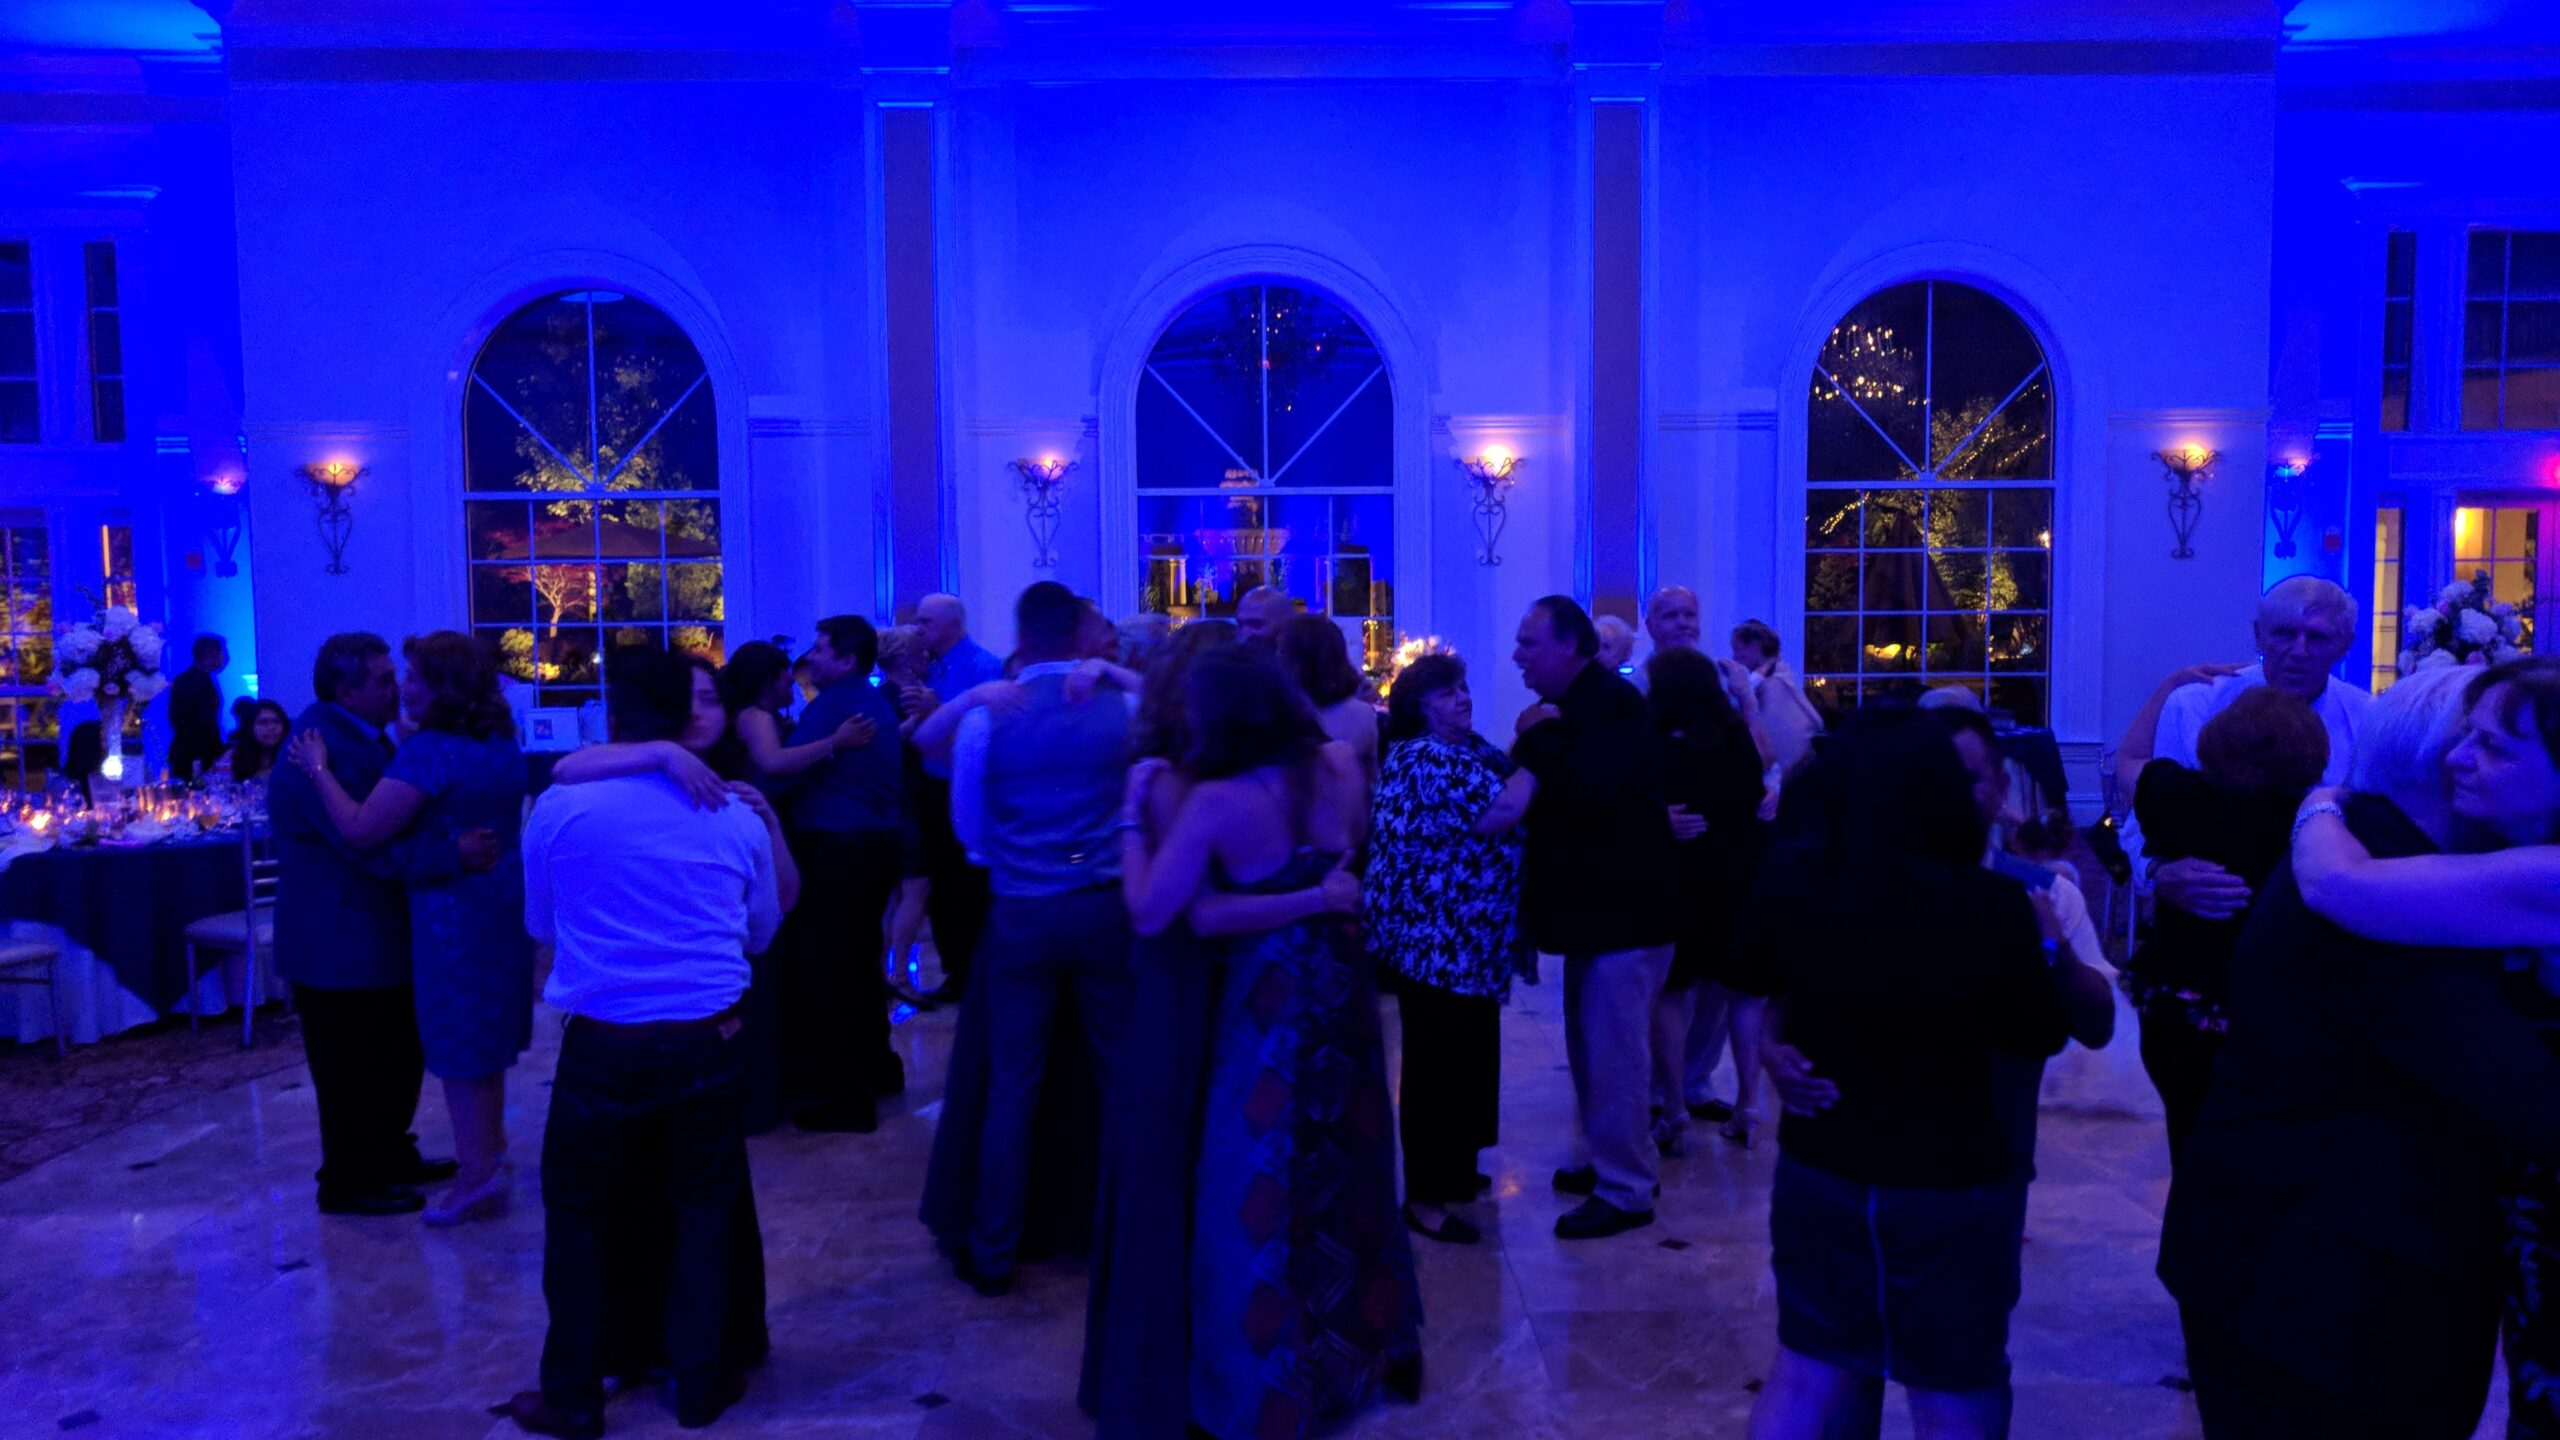 Blue lit dance floor with couples slow dancing at Aria wedding